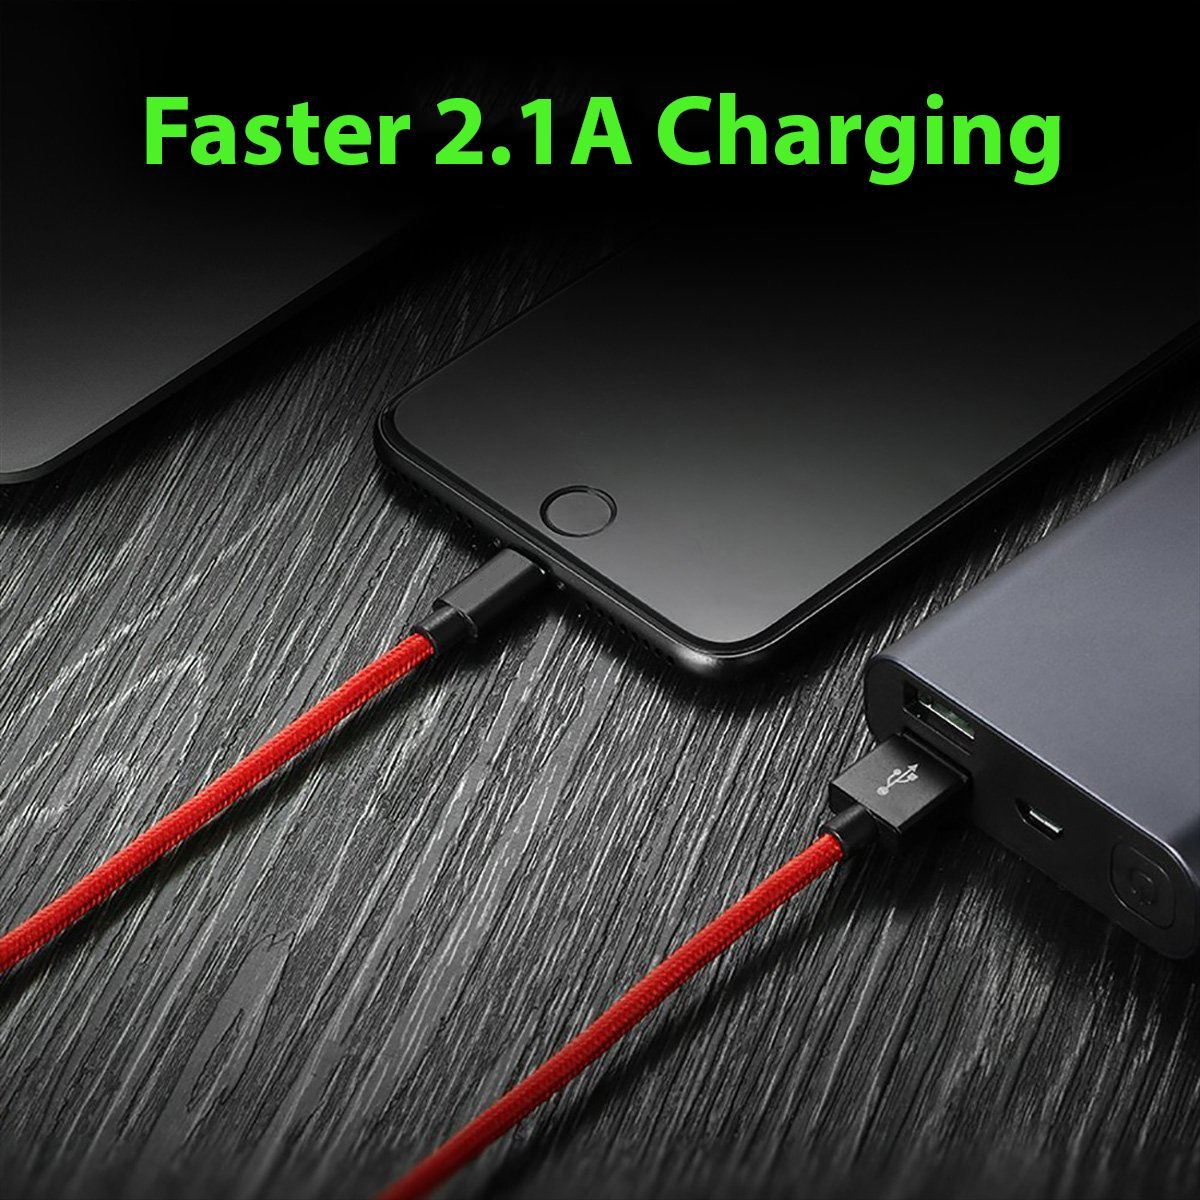 1M-2M-3M-Heavy-Duty-Braided-Lightning-Charger-Cable-For-iPhone-5-6-7-8-X-iPad thumbnail 19